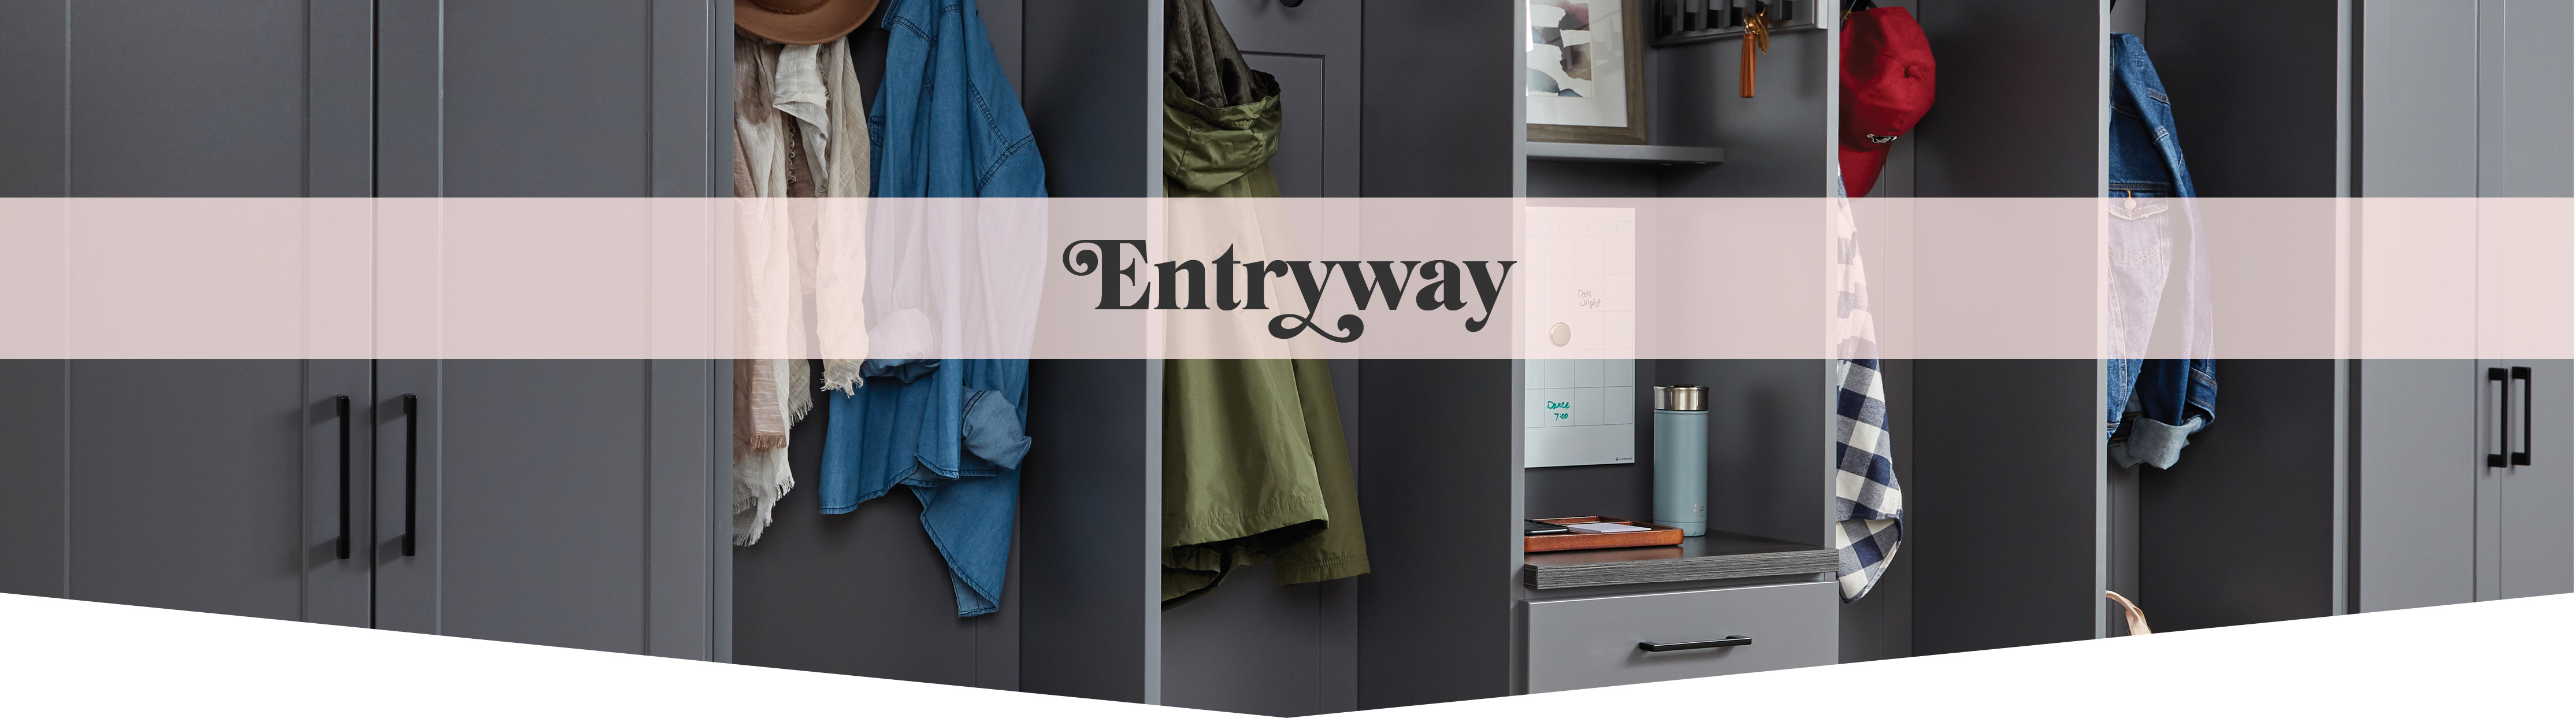 Customer entryways solutions created by Inspired Closets